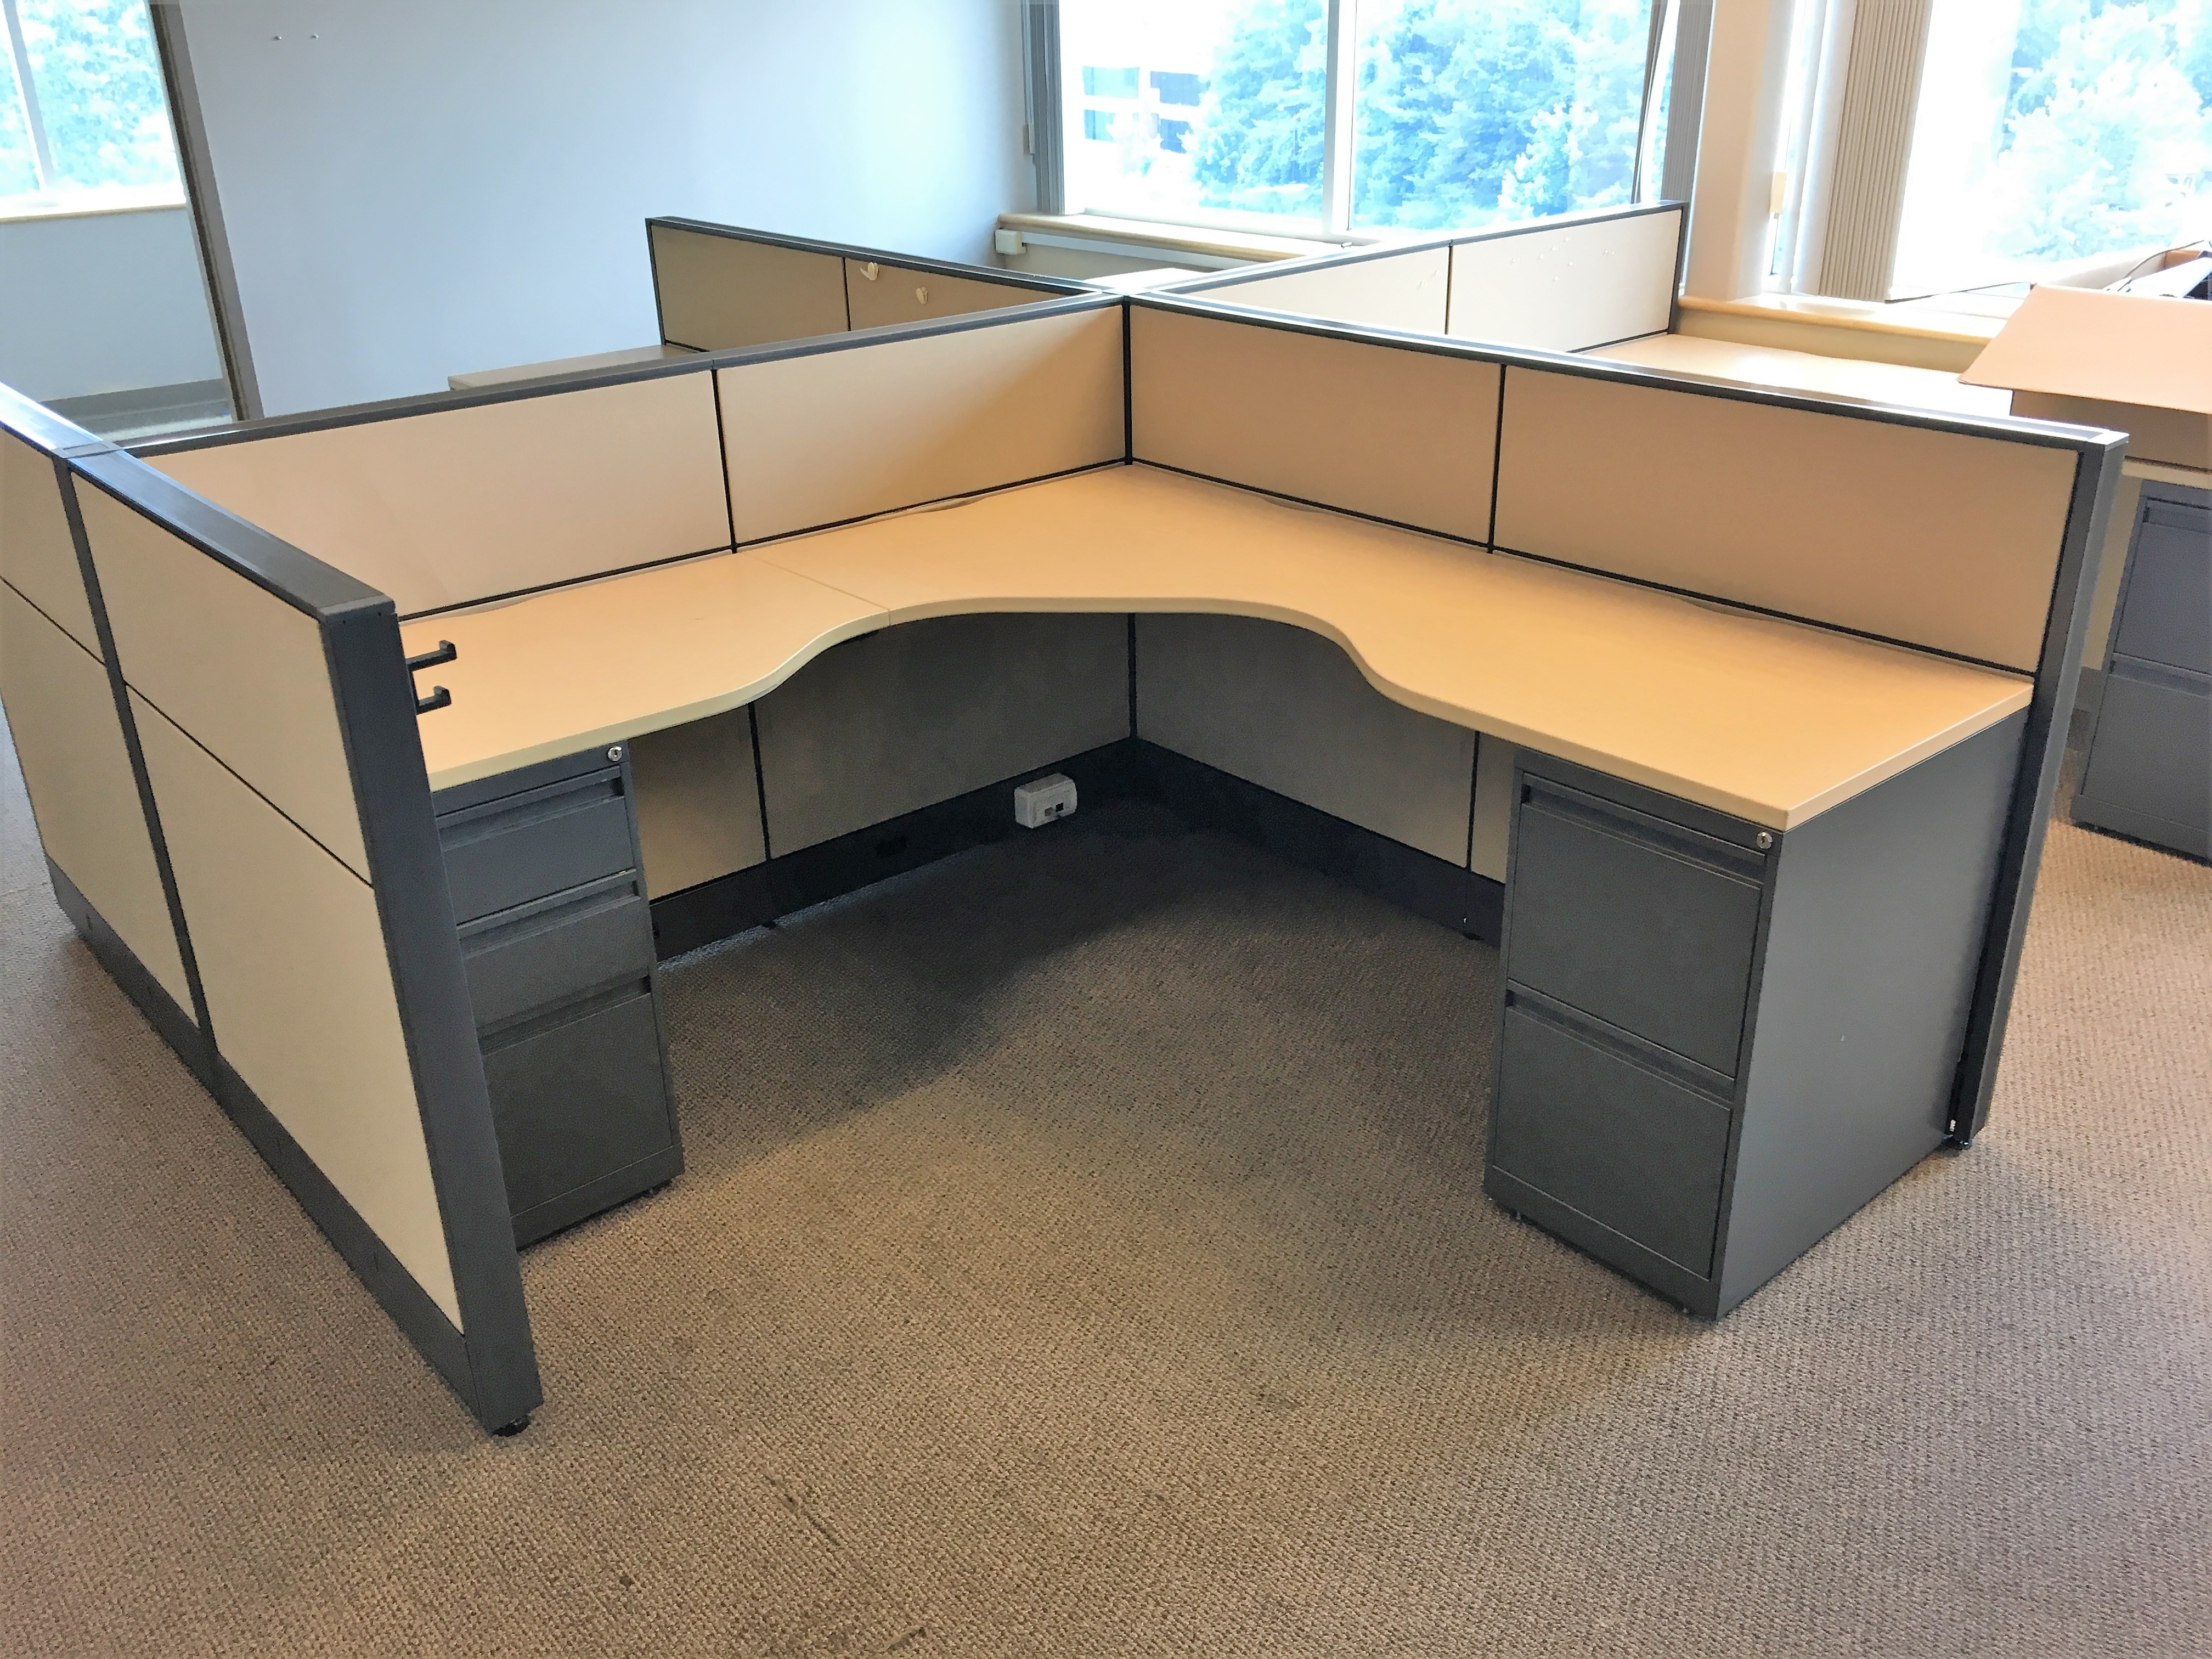 surplus office equipment - high quality new & pre-owned equipment